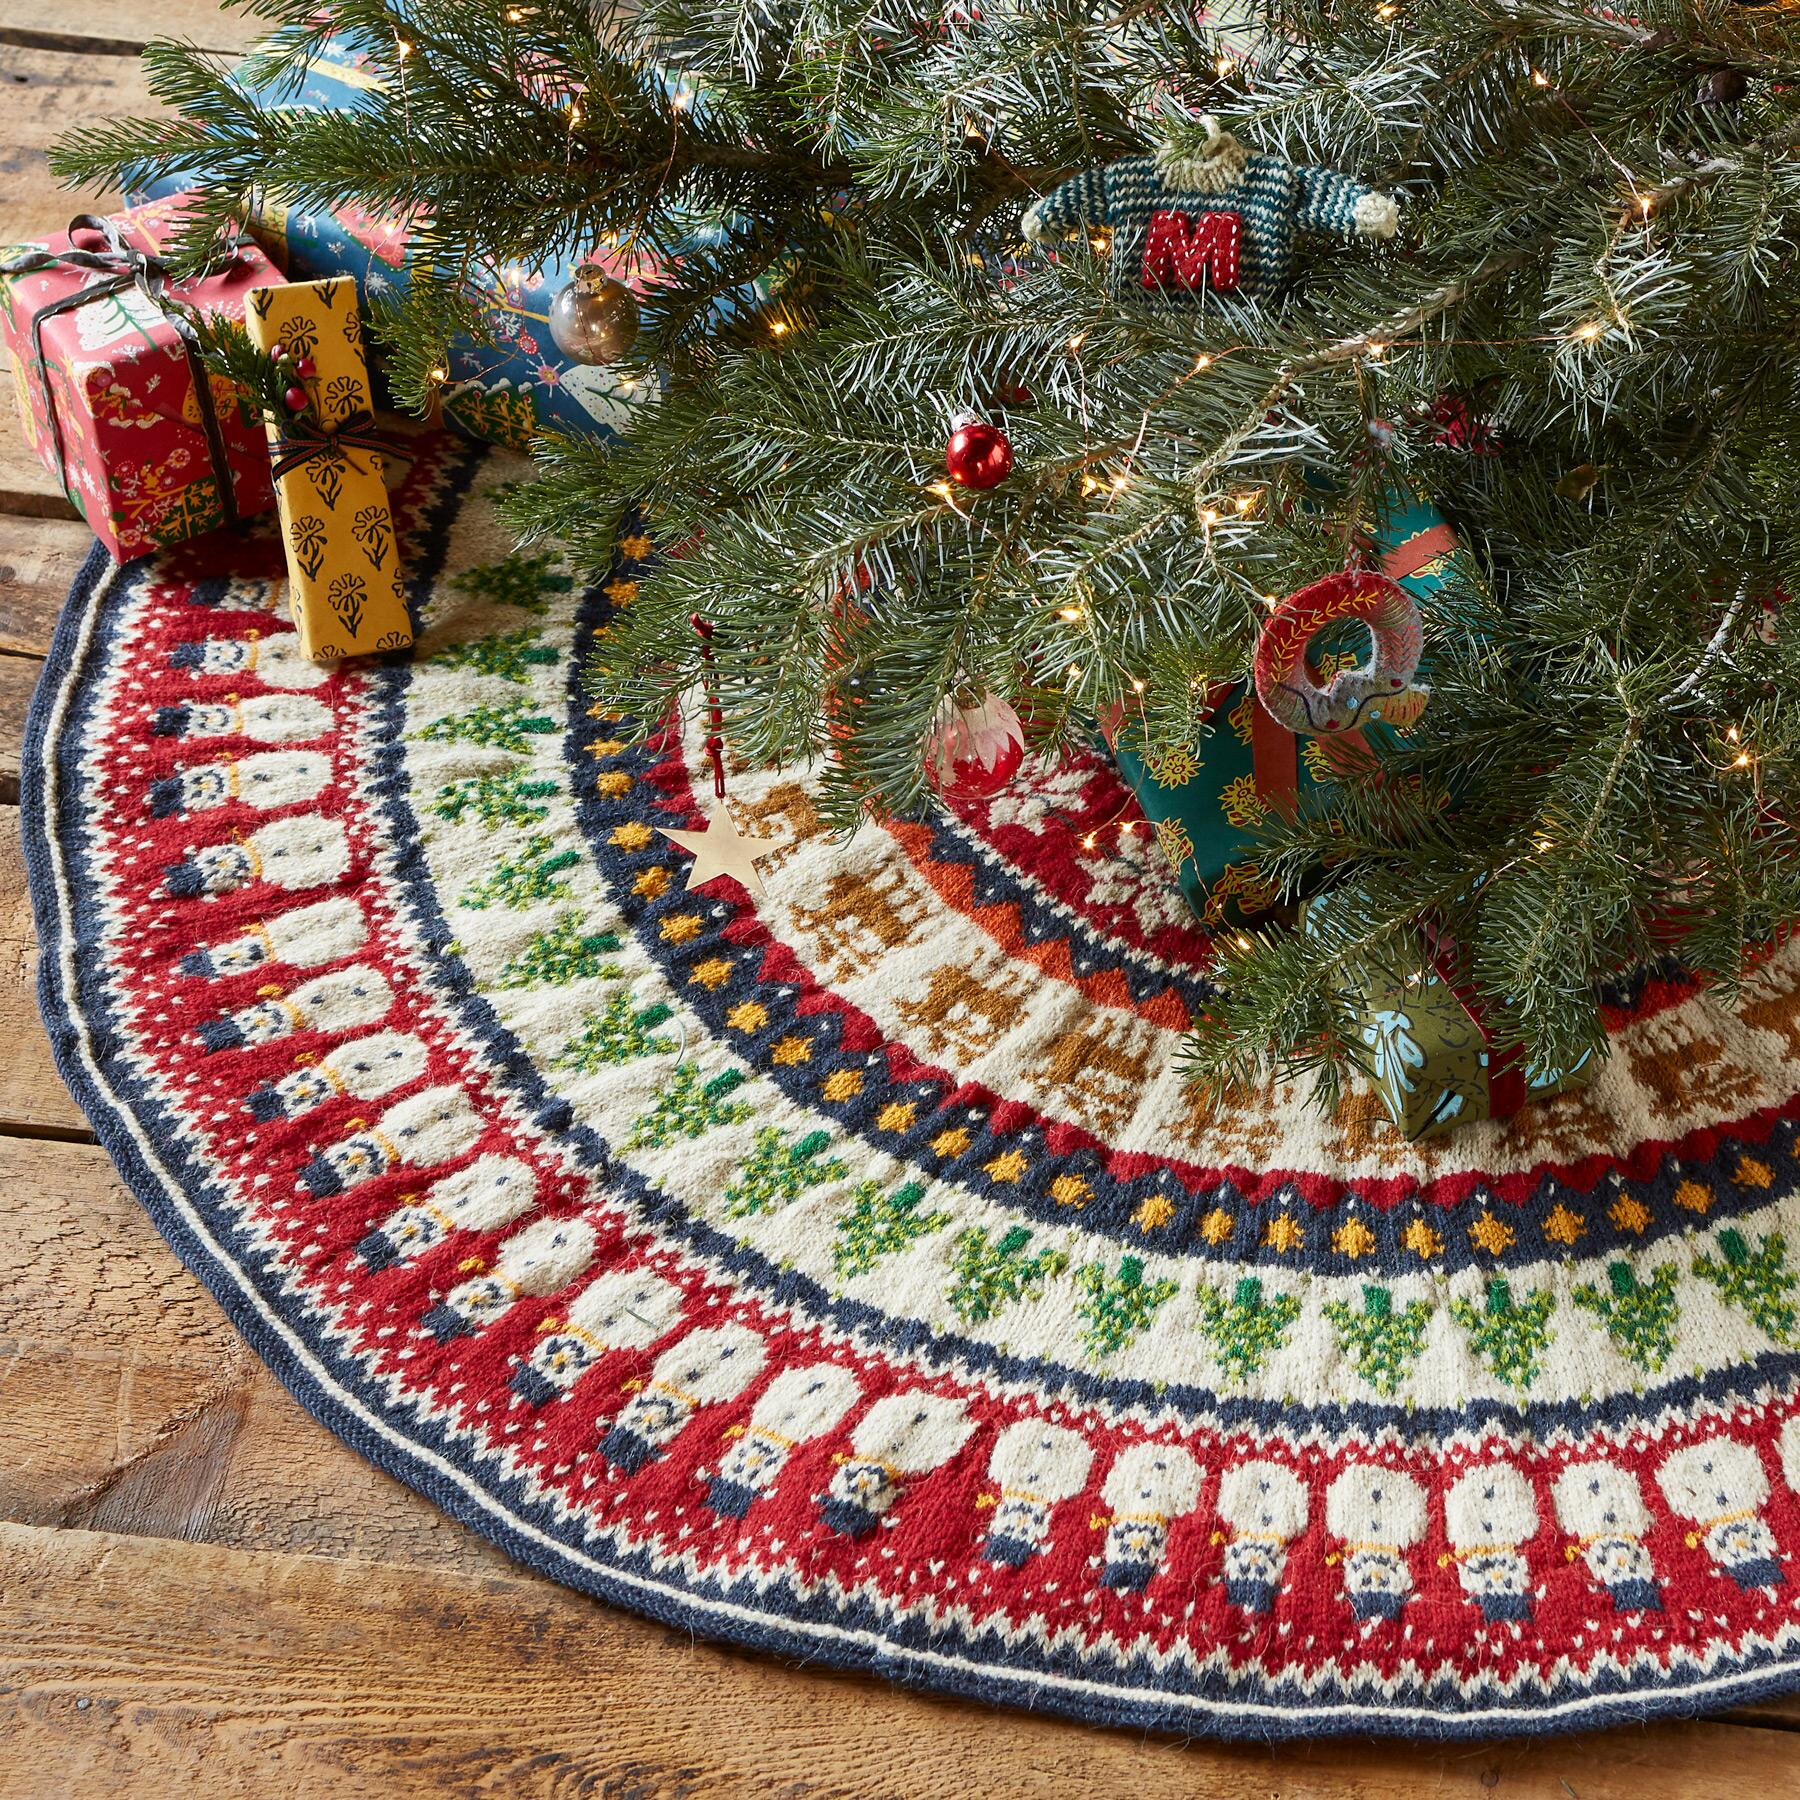 HEIRLOOM HOLIDAY MIX TREE SKIRT: View 1